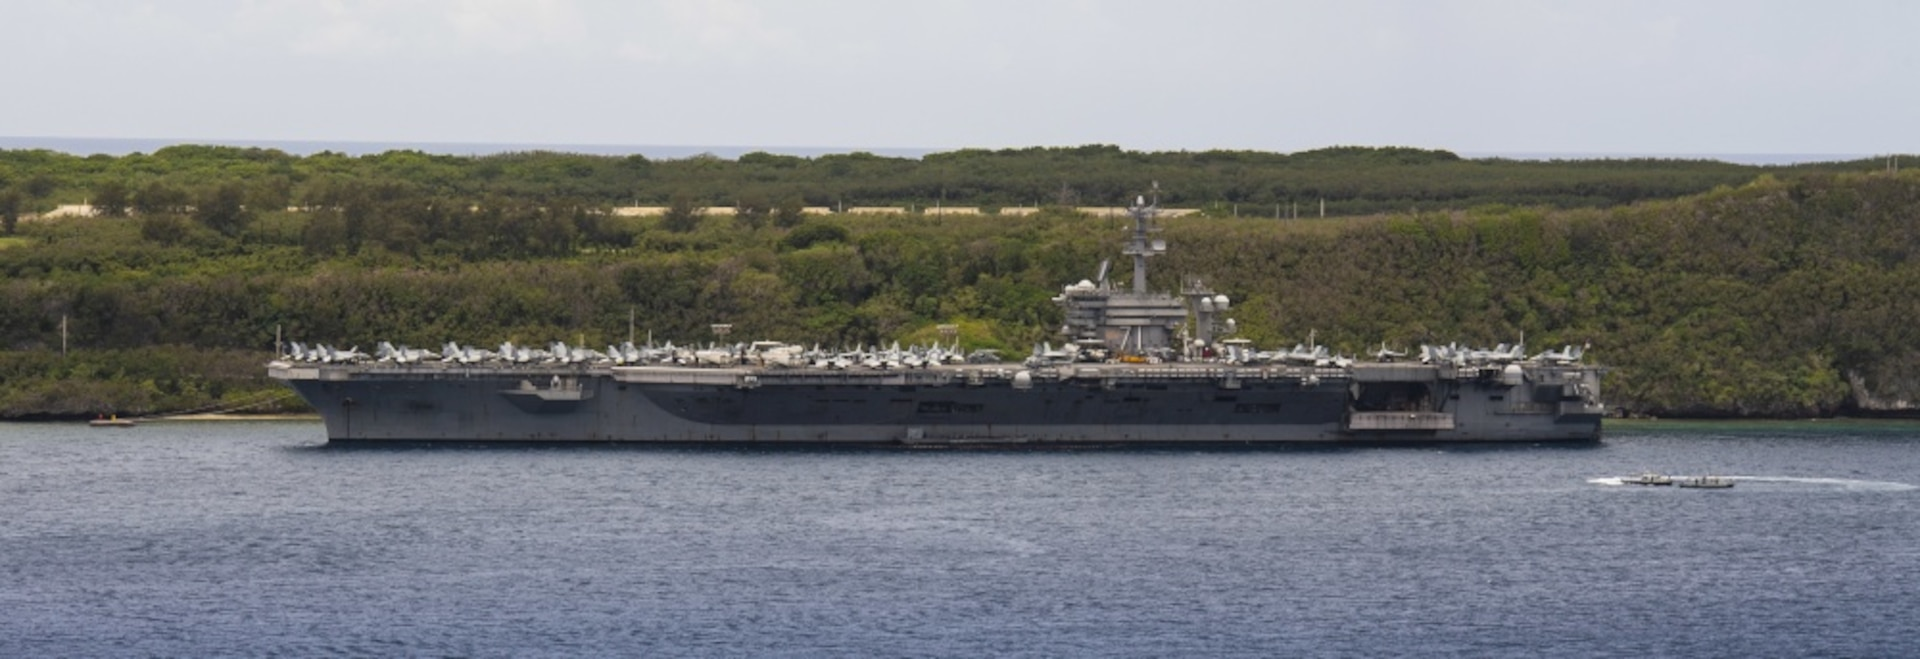 USS Theodore Roosevelt Conducts Fast Cruise in Guam